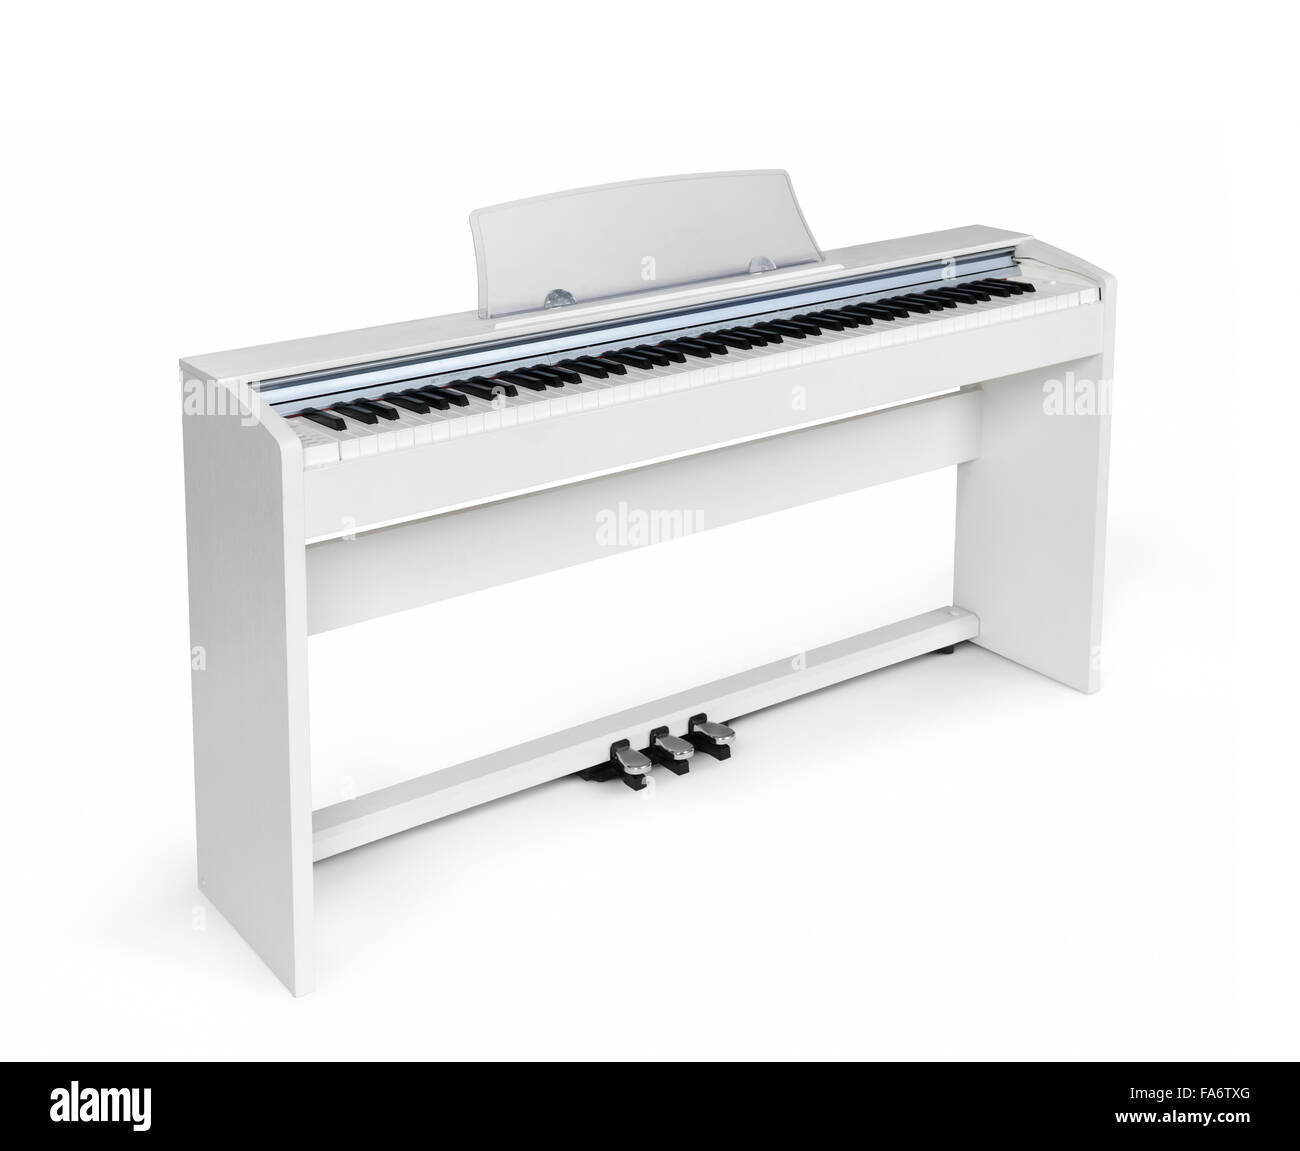 White upright digital piano in isolated on white background with clipping path - Stock Image